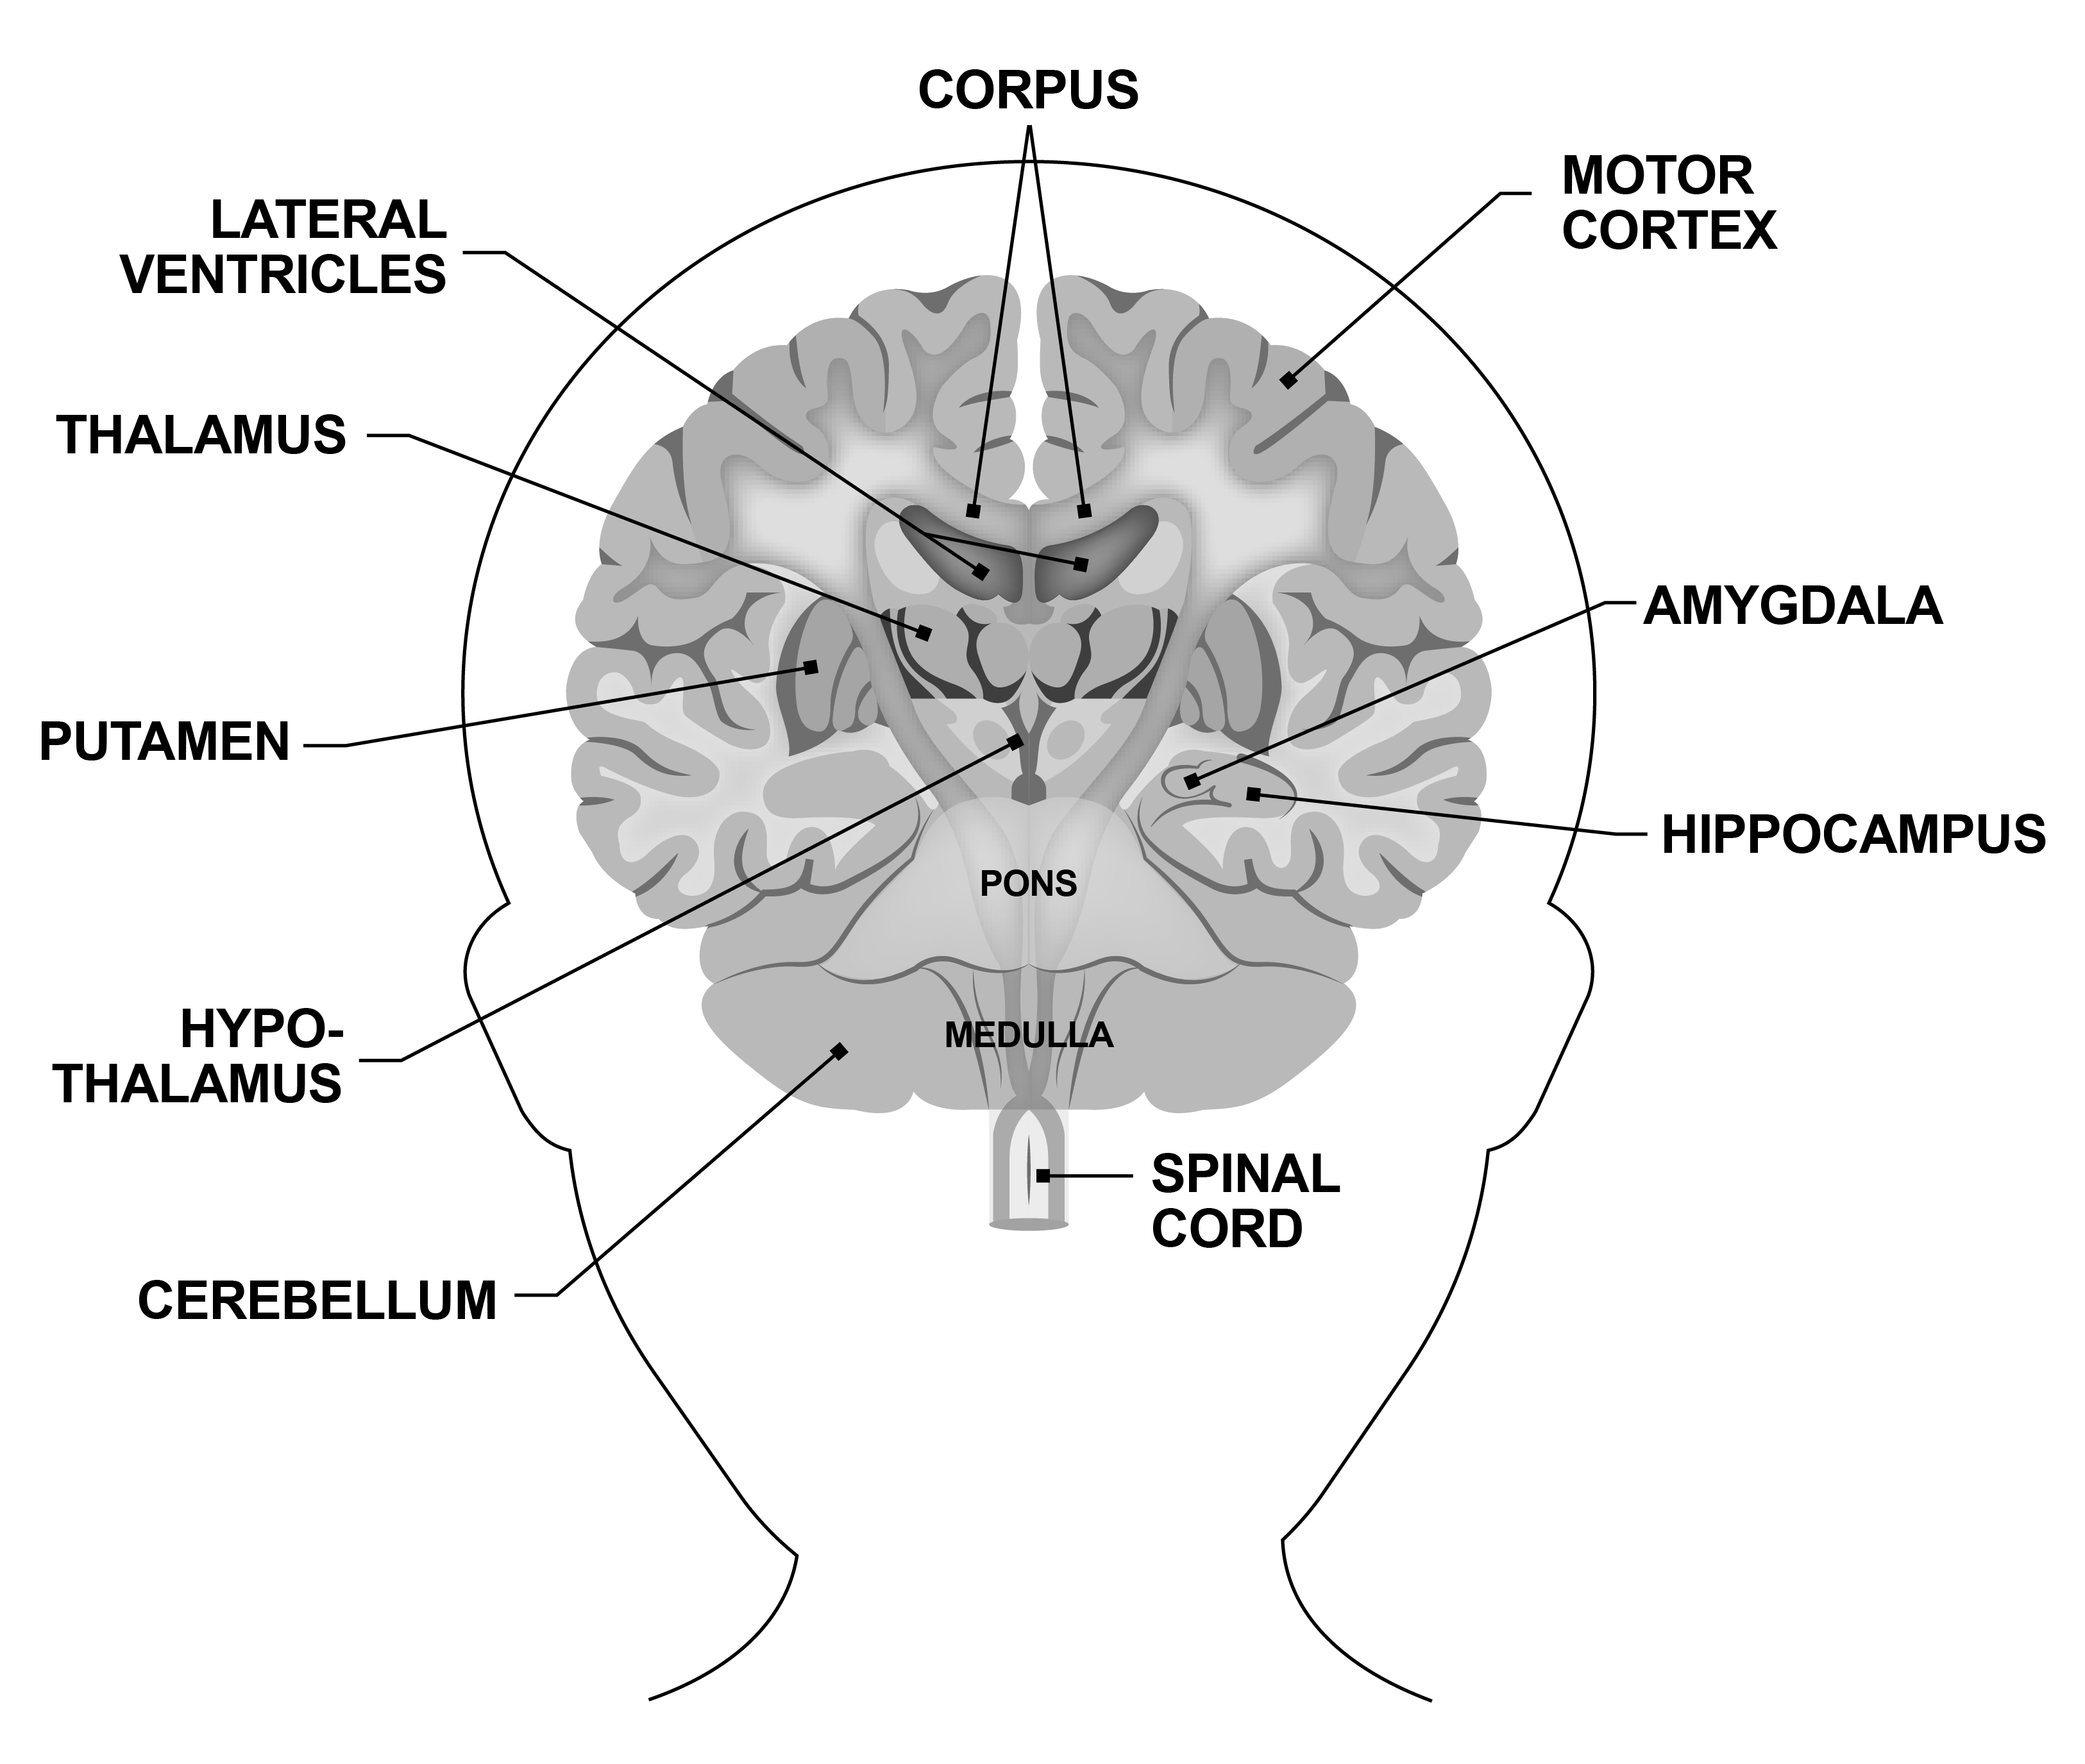 brain anatomy - I need them in color and grey scale.